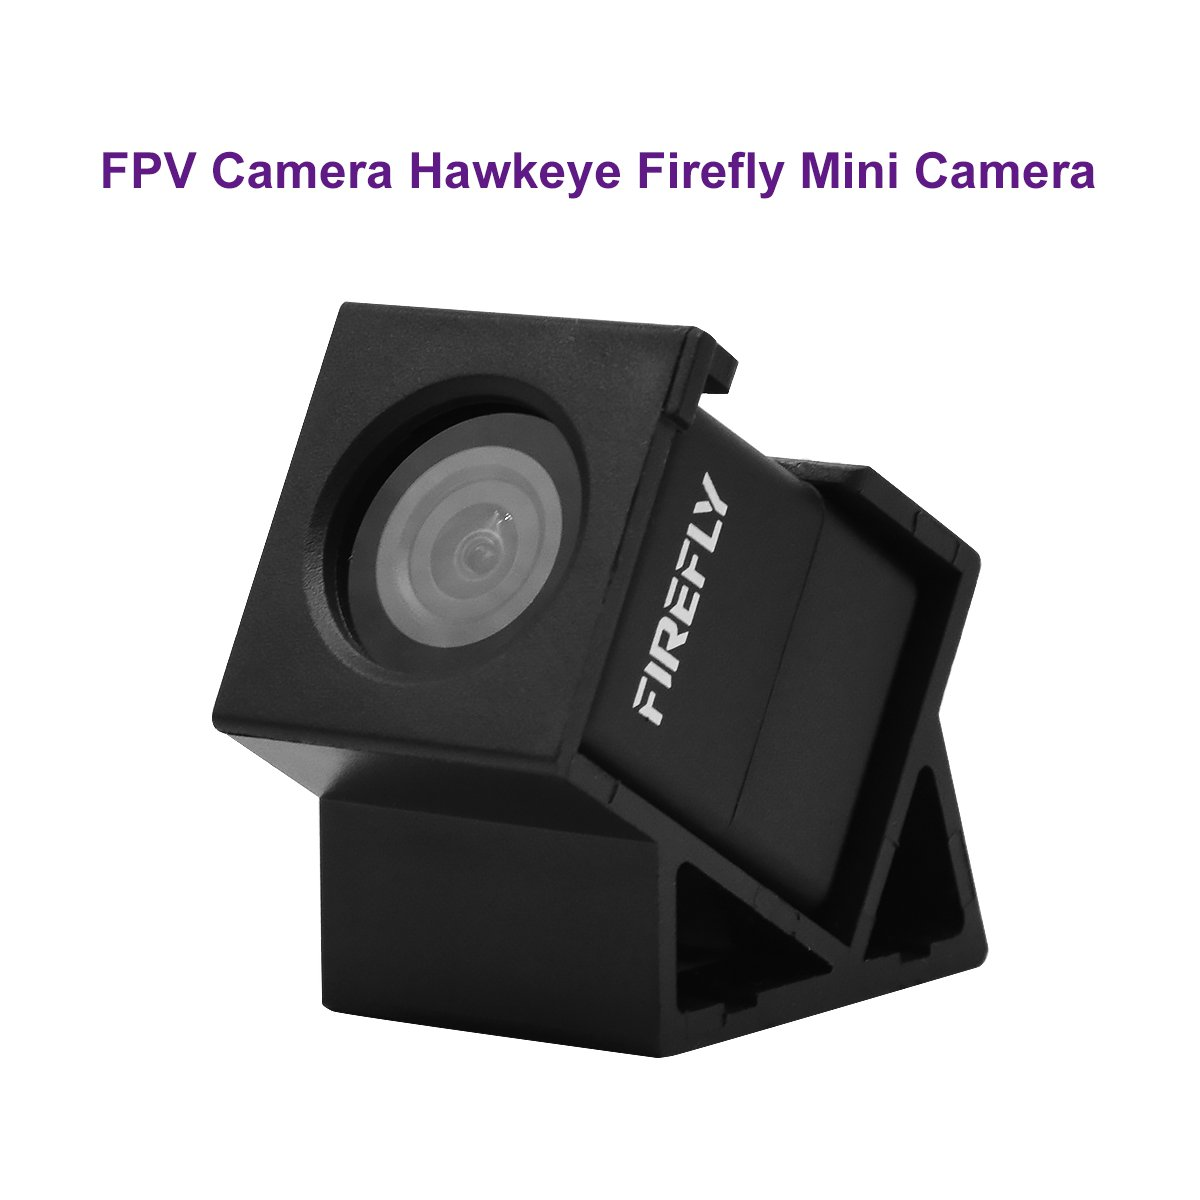 FPV Camera Hawkeye Firefly Mini Camera 160 Degree HD 1080P FPV Micro Action Camera DVR Built-in Mic for RC Drone